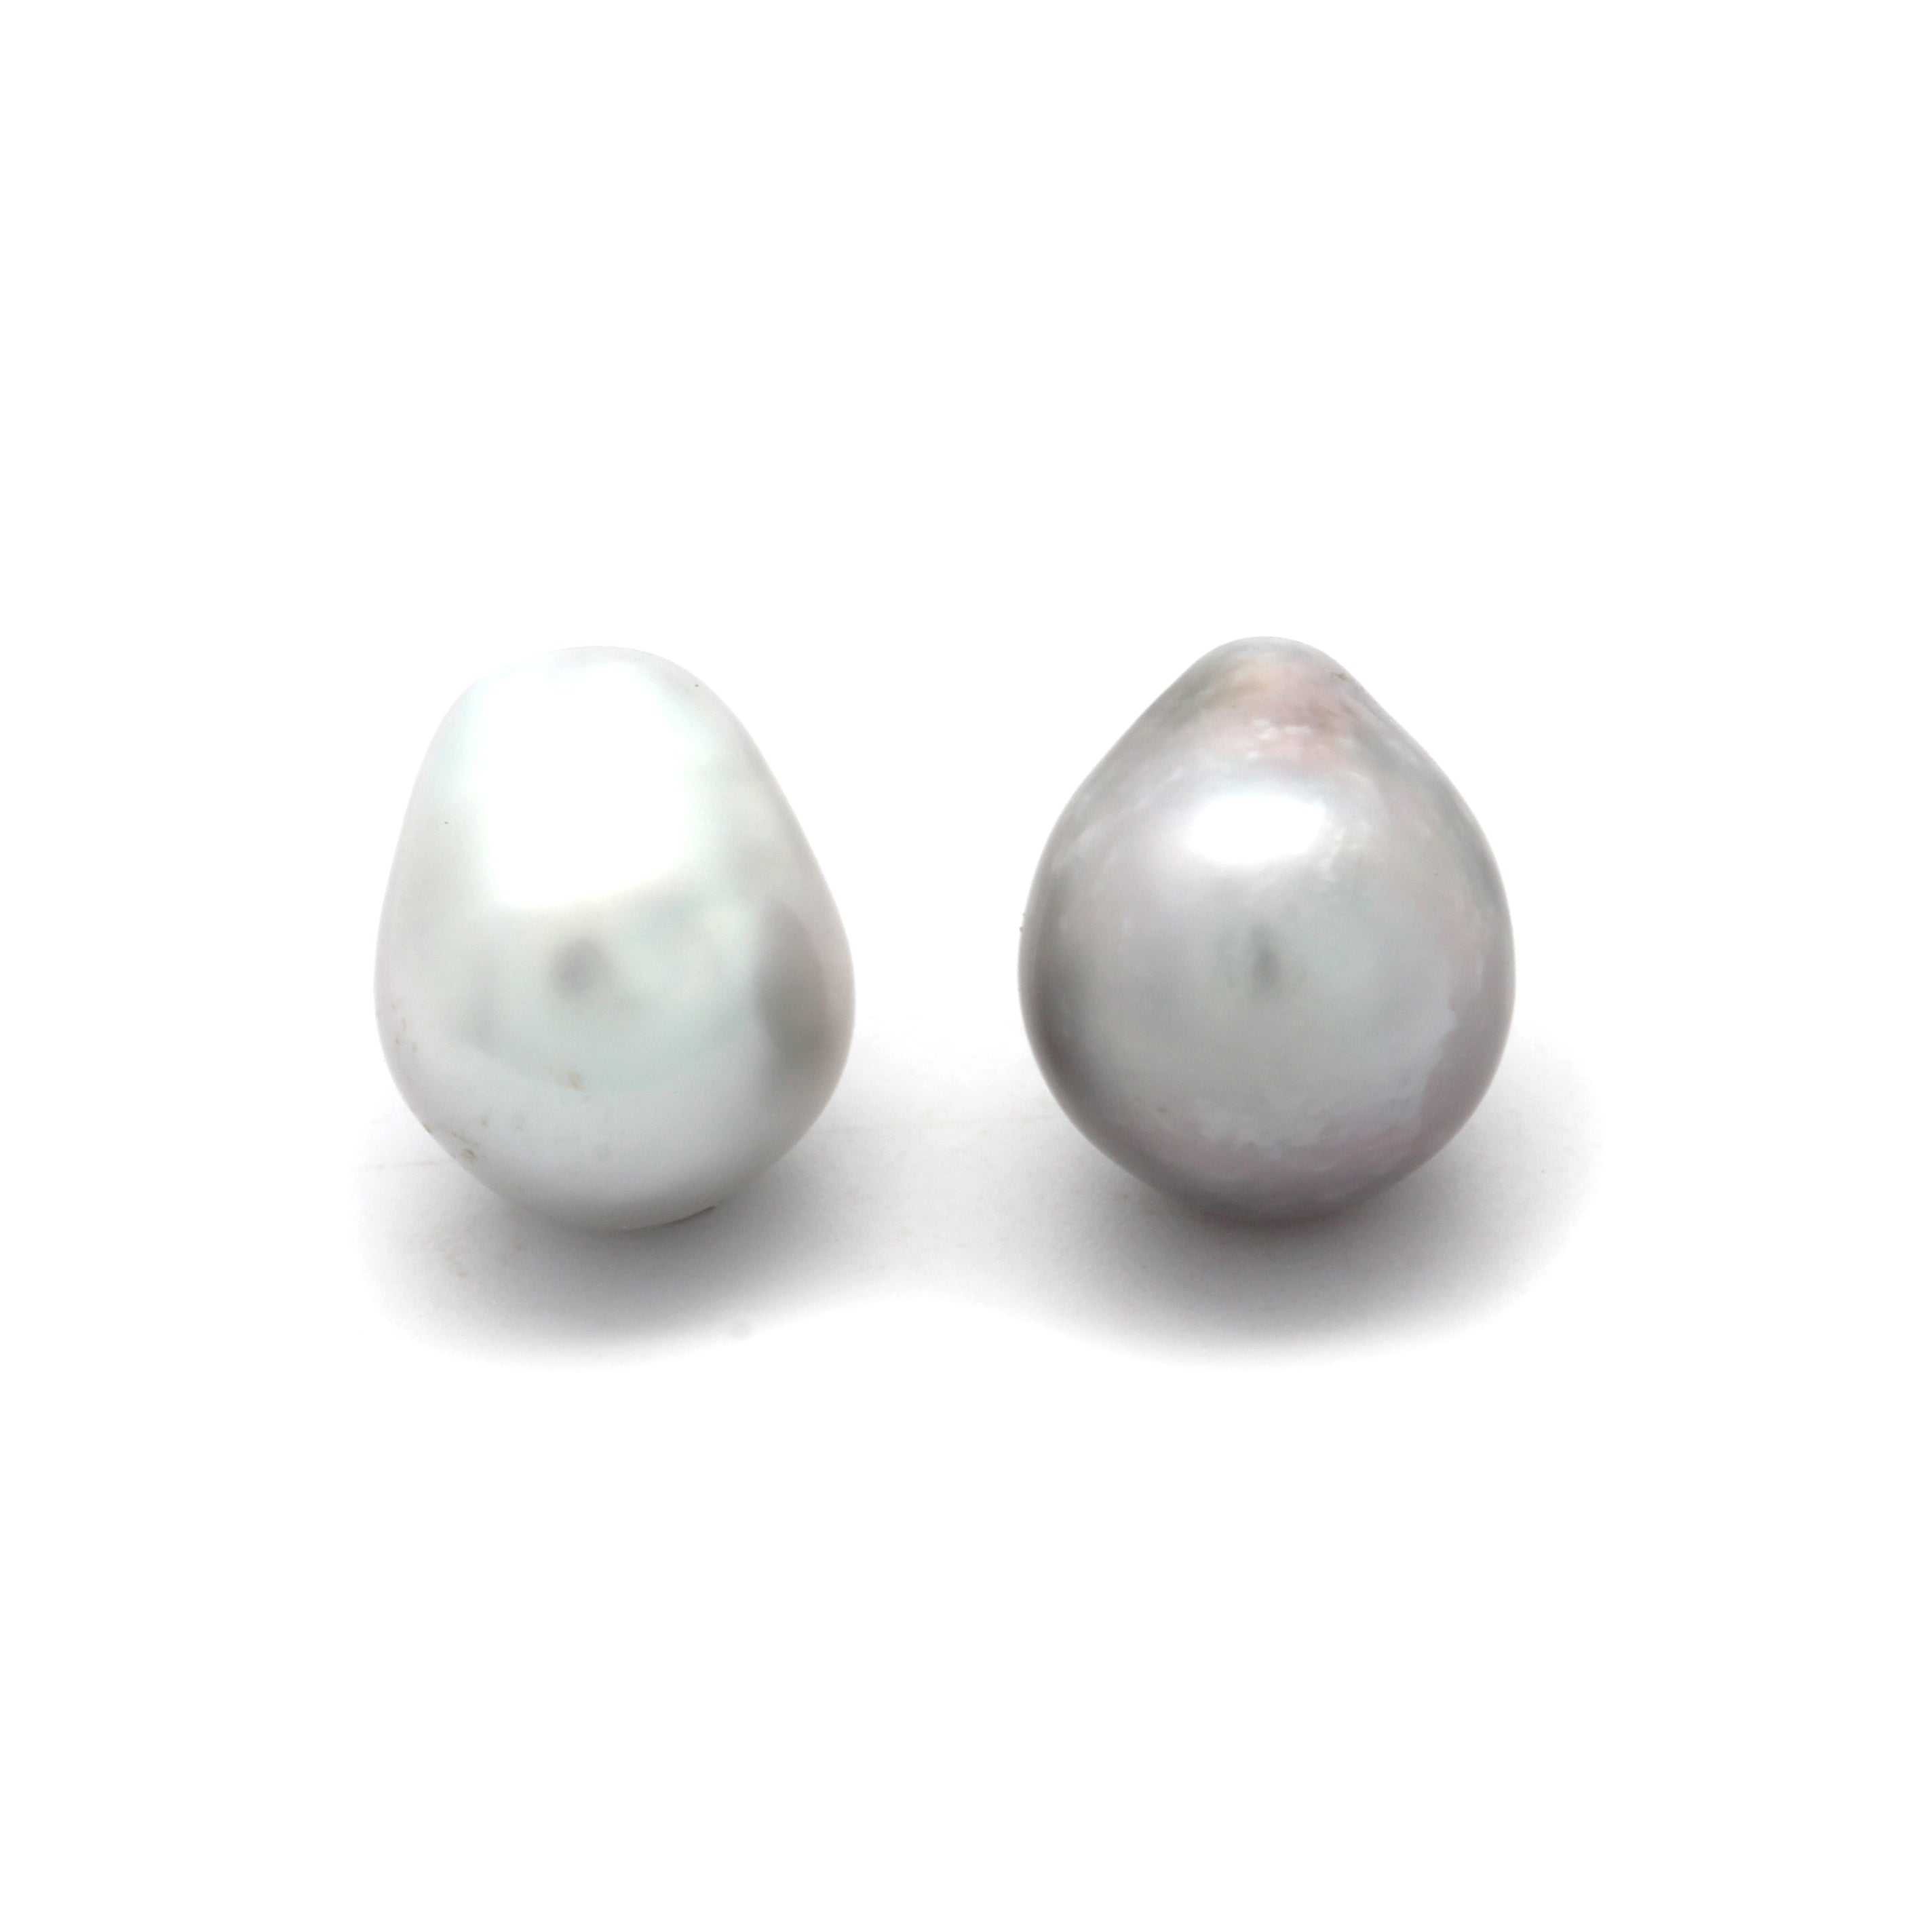 Lot of 6 Baroque Cortez Pearls from 2020 HARVEST